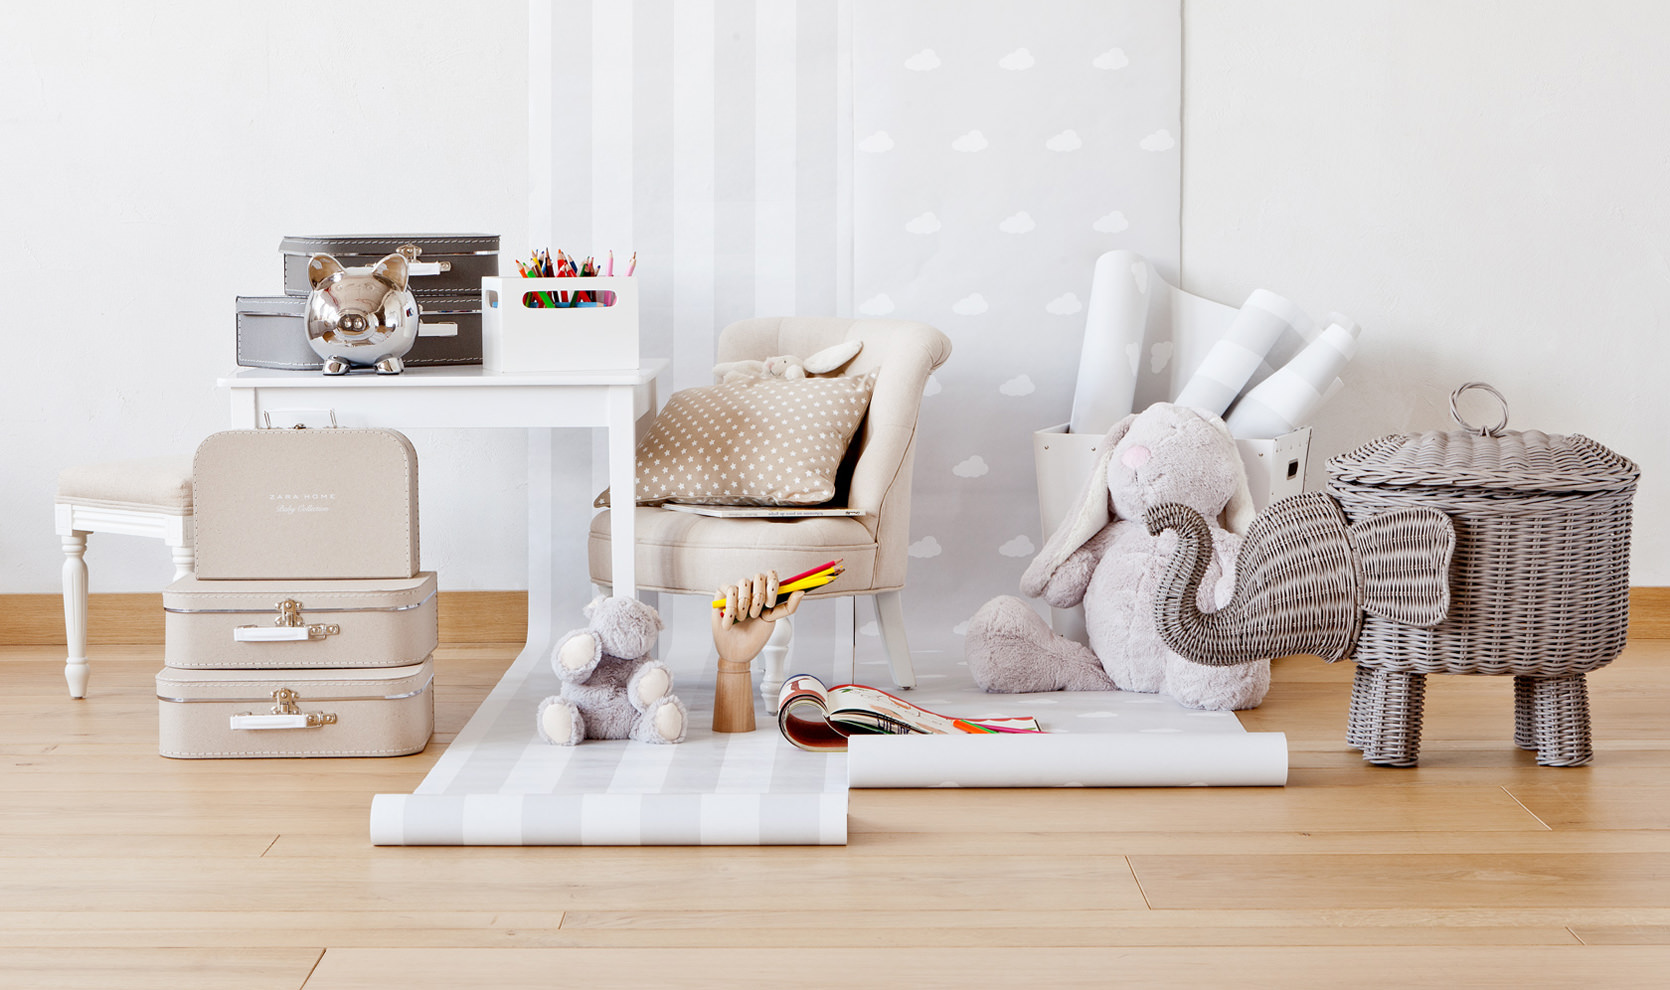 Zara kids collection 2015 vogliacasavogliacasa for Cuscini arredo zara home